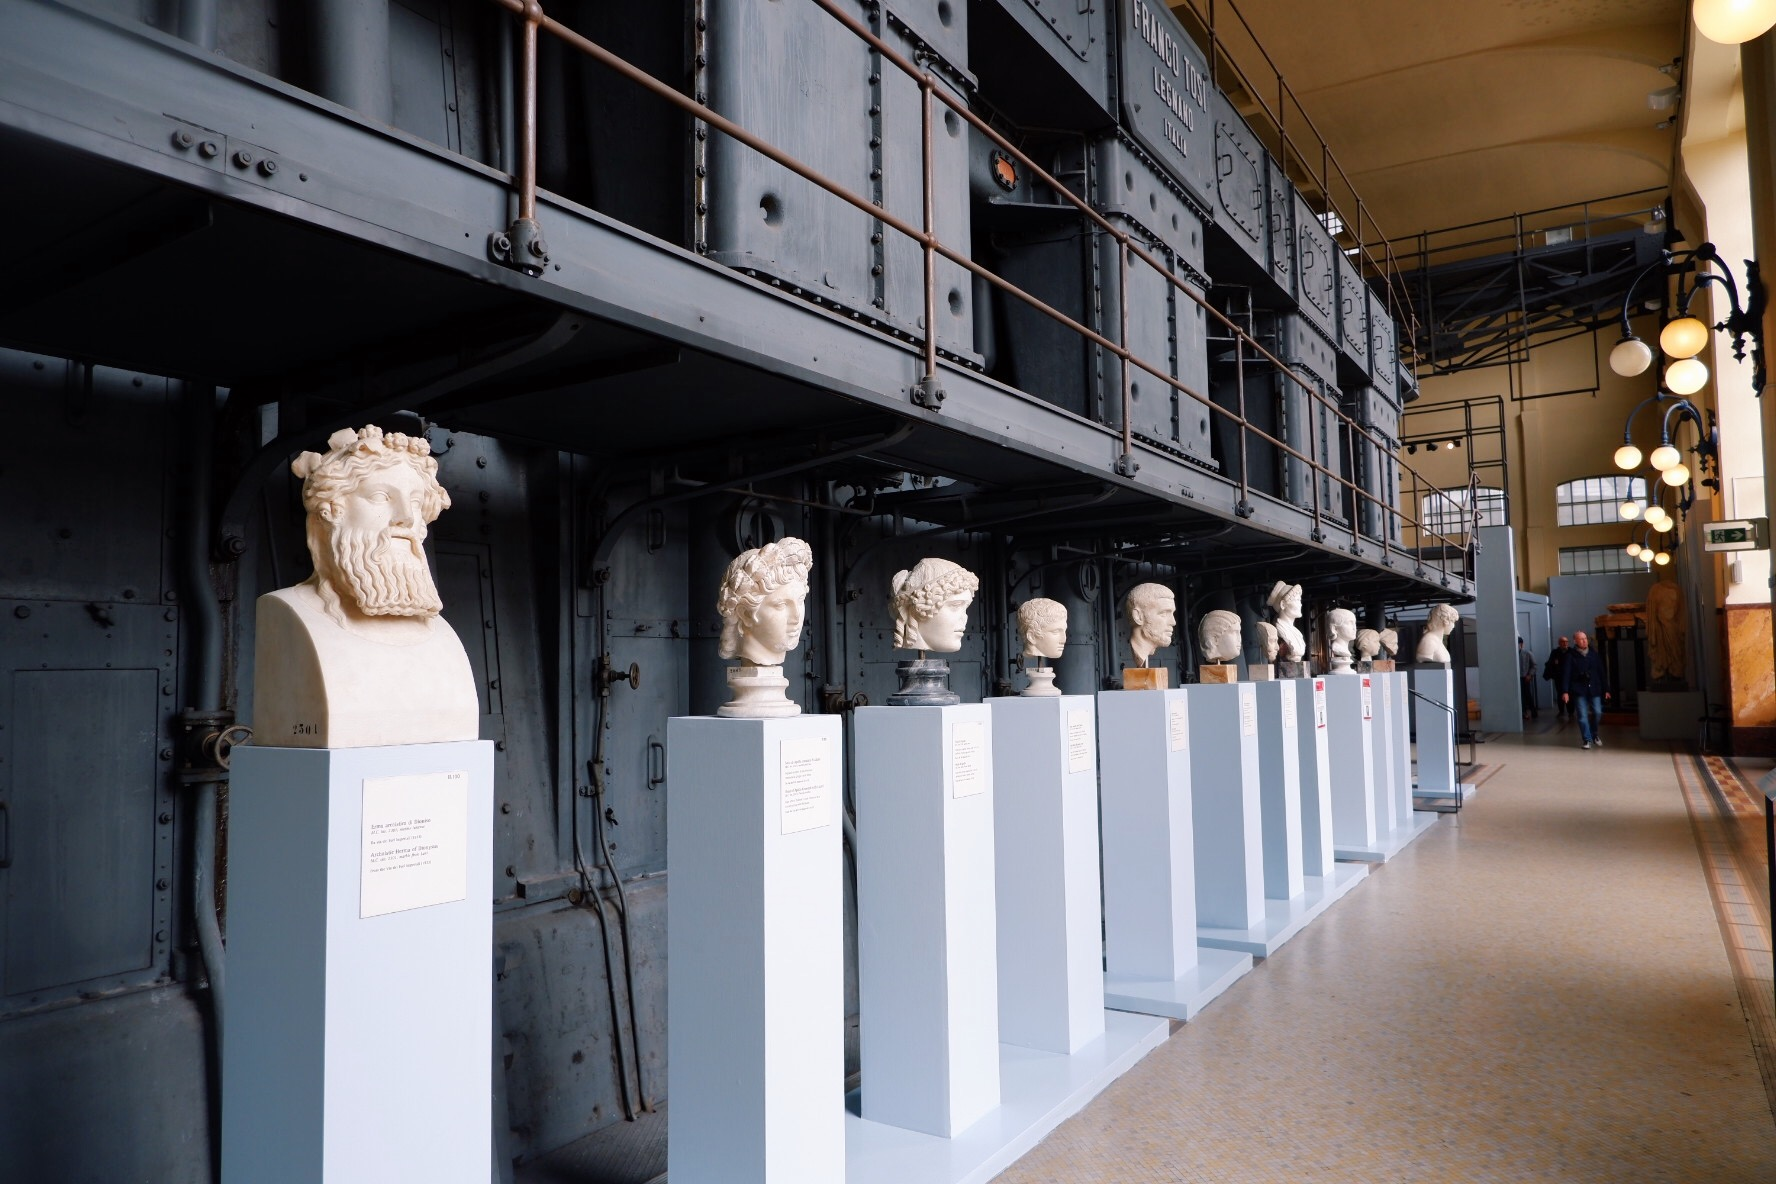 Marble sculptures at Centrale Montemartini